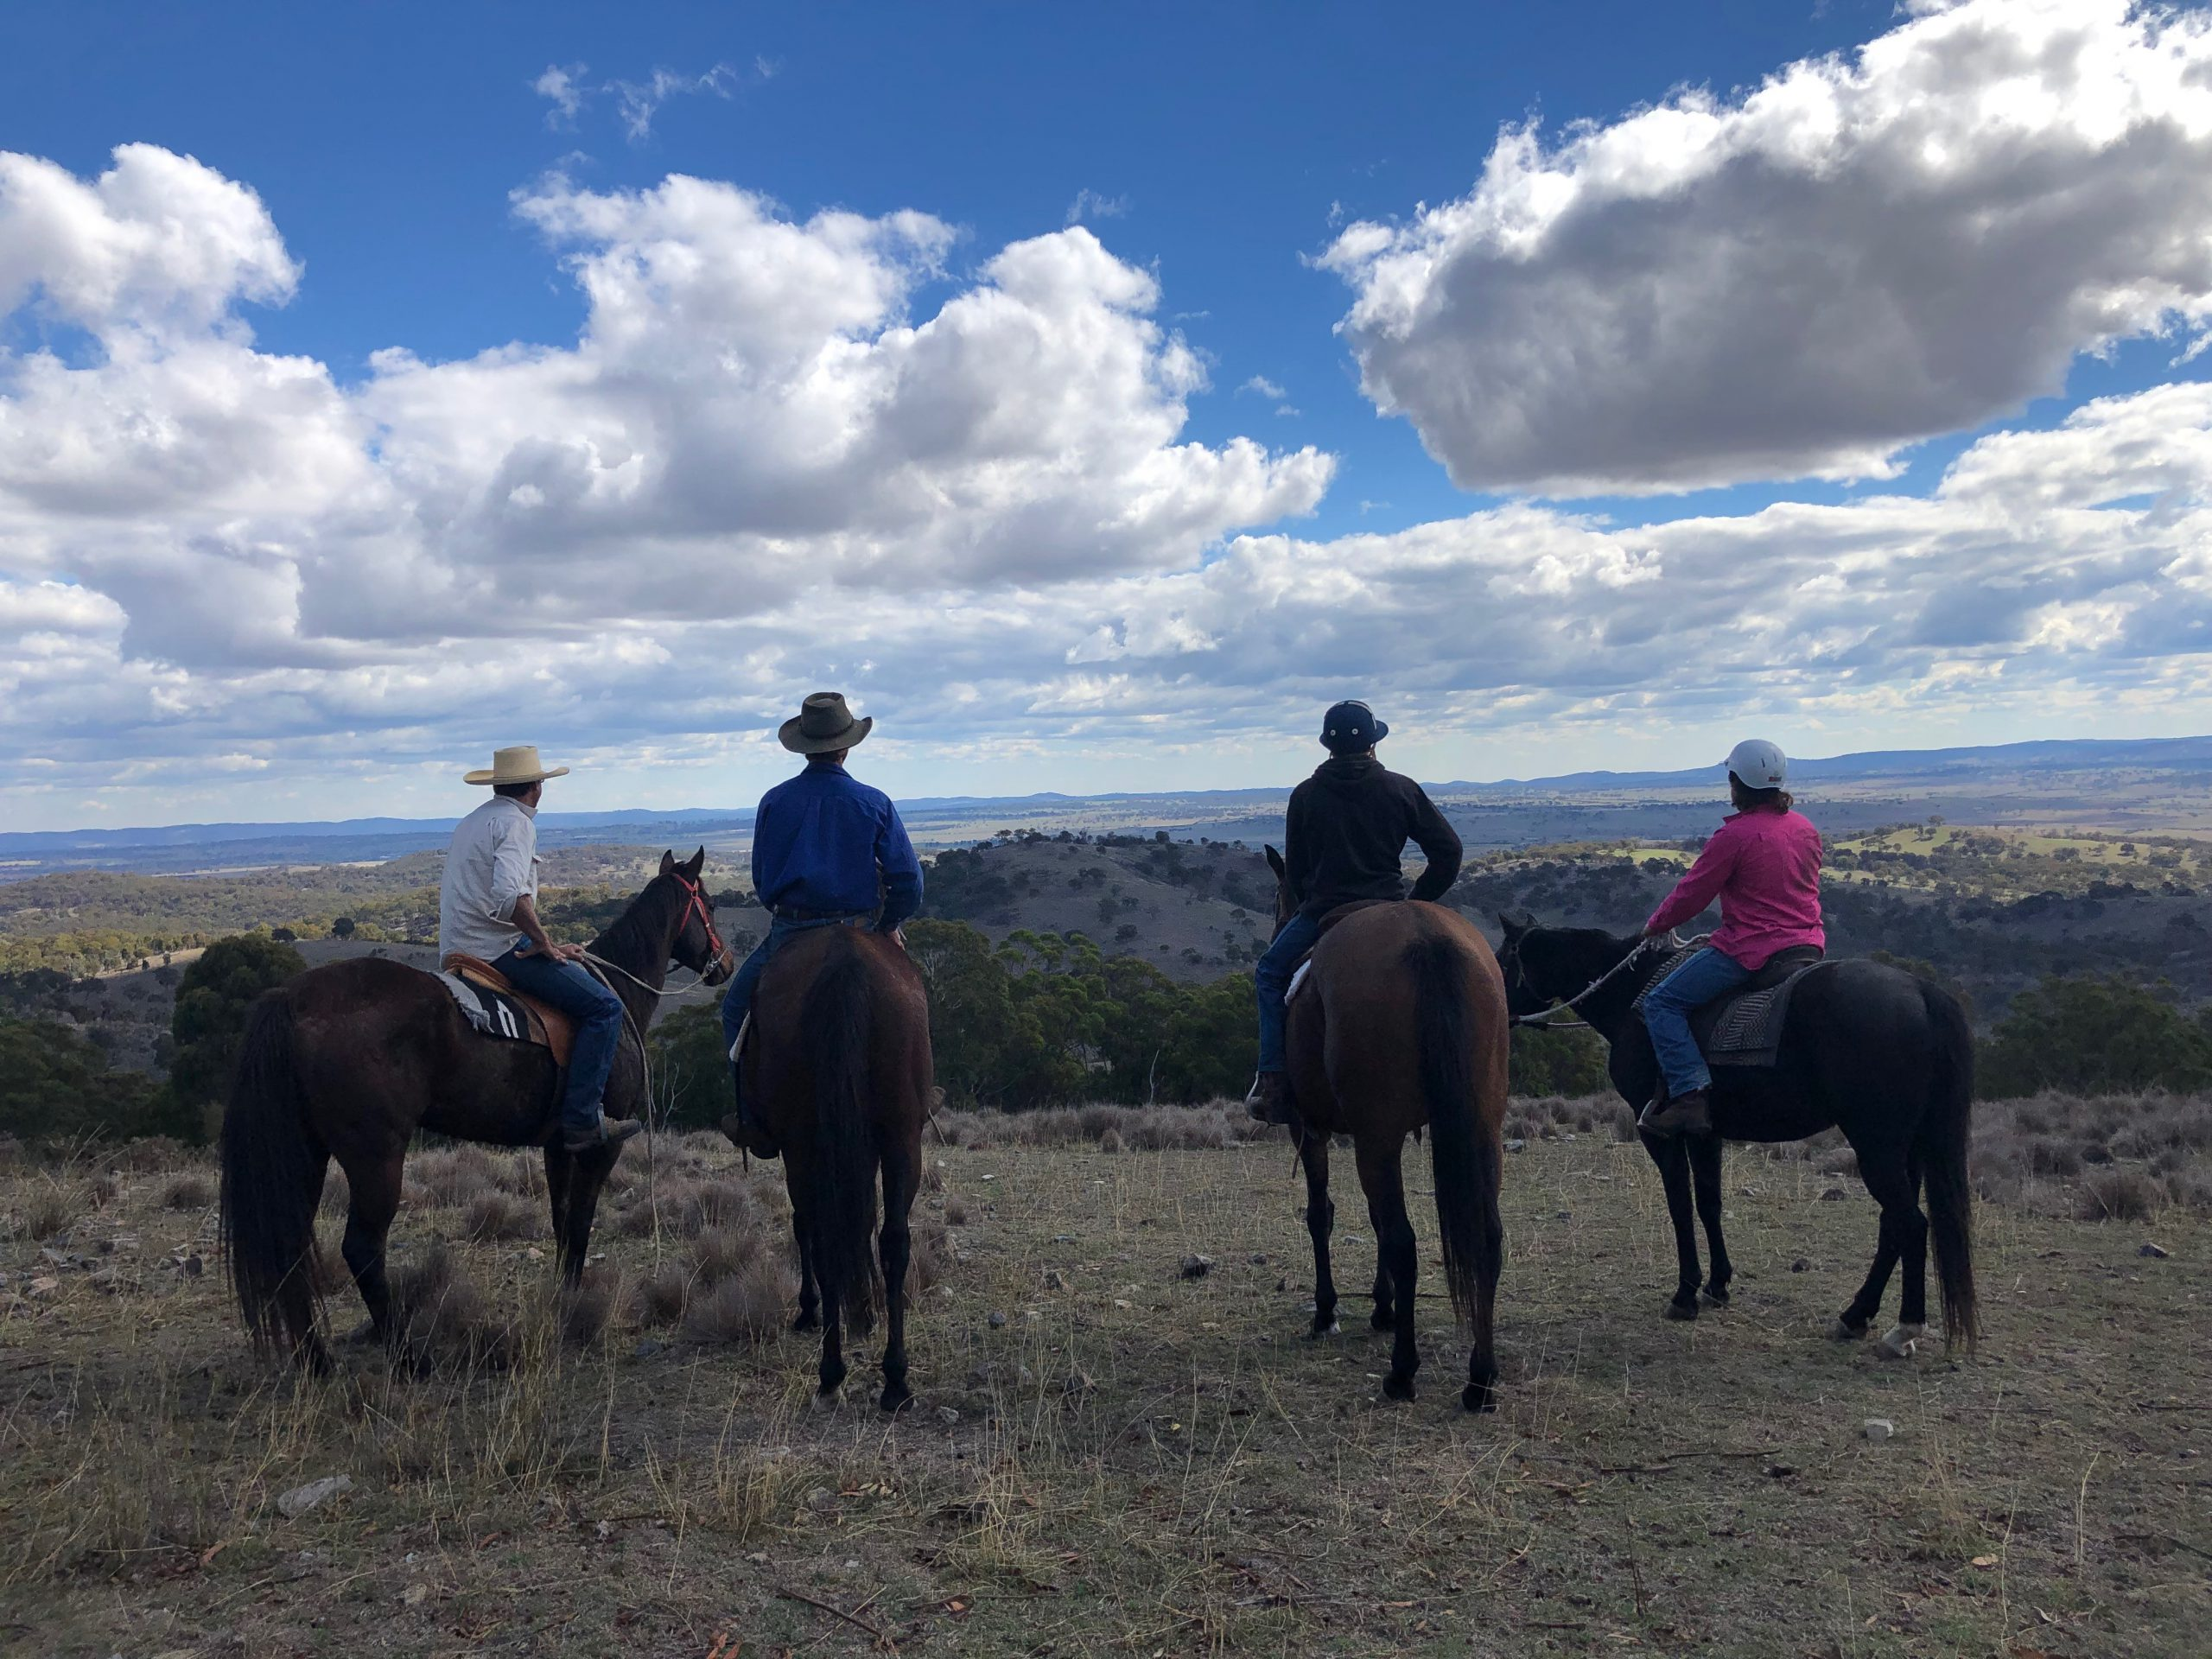 Retired Racehorses Helping Troubled Teens Get Back On Track